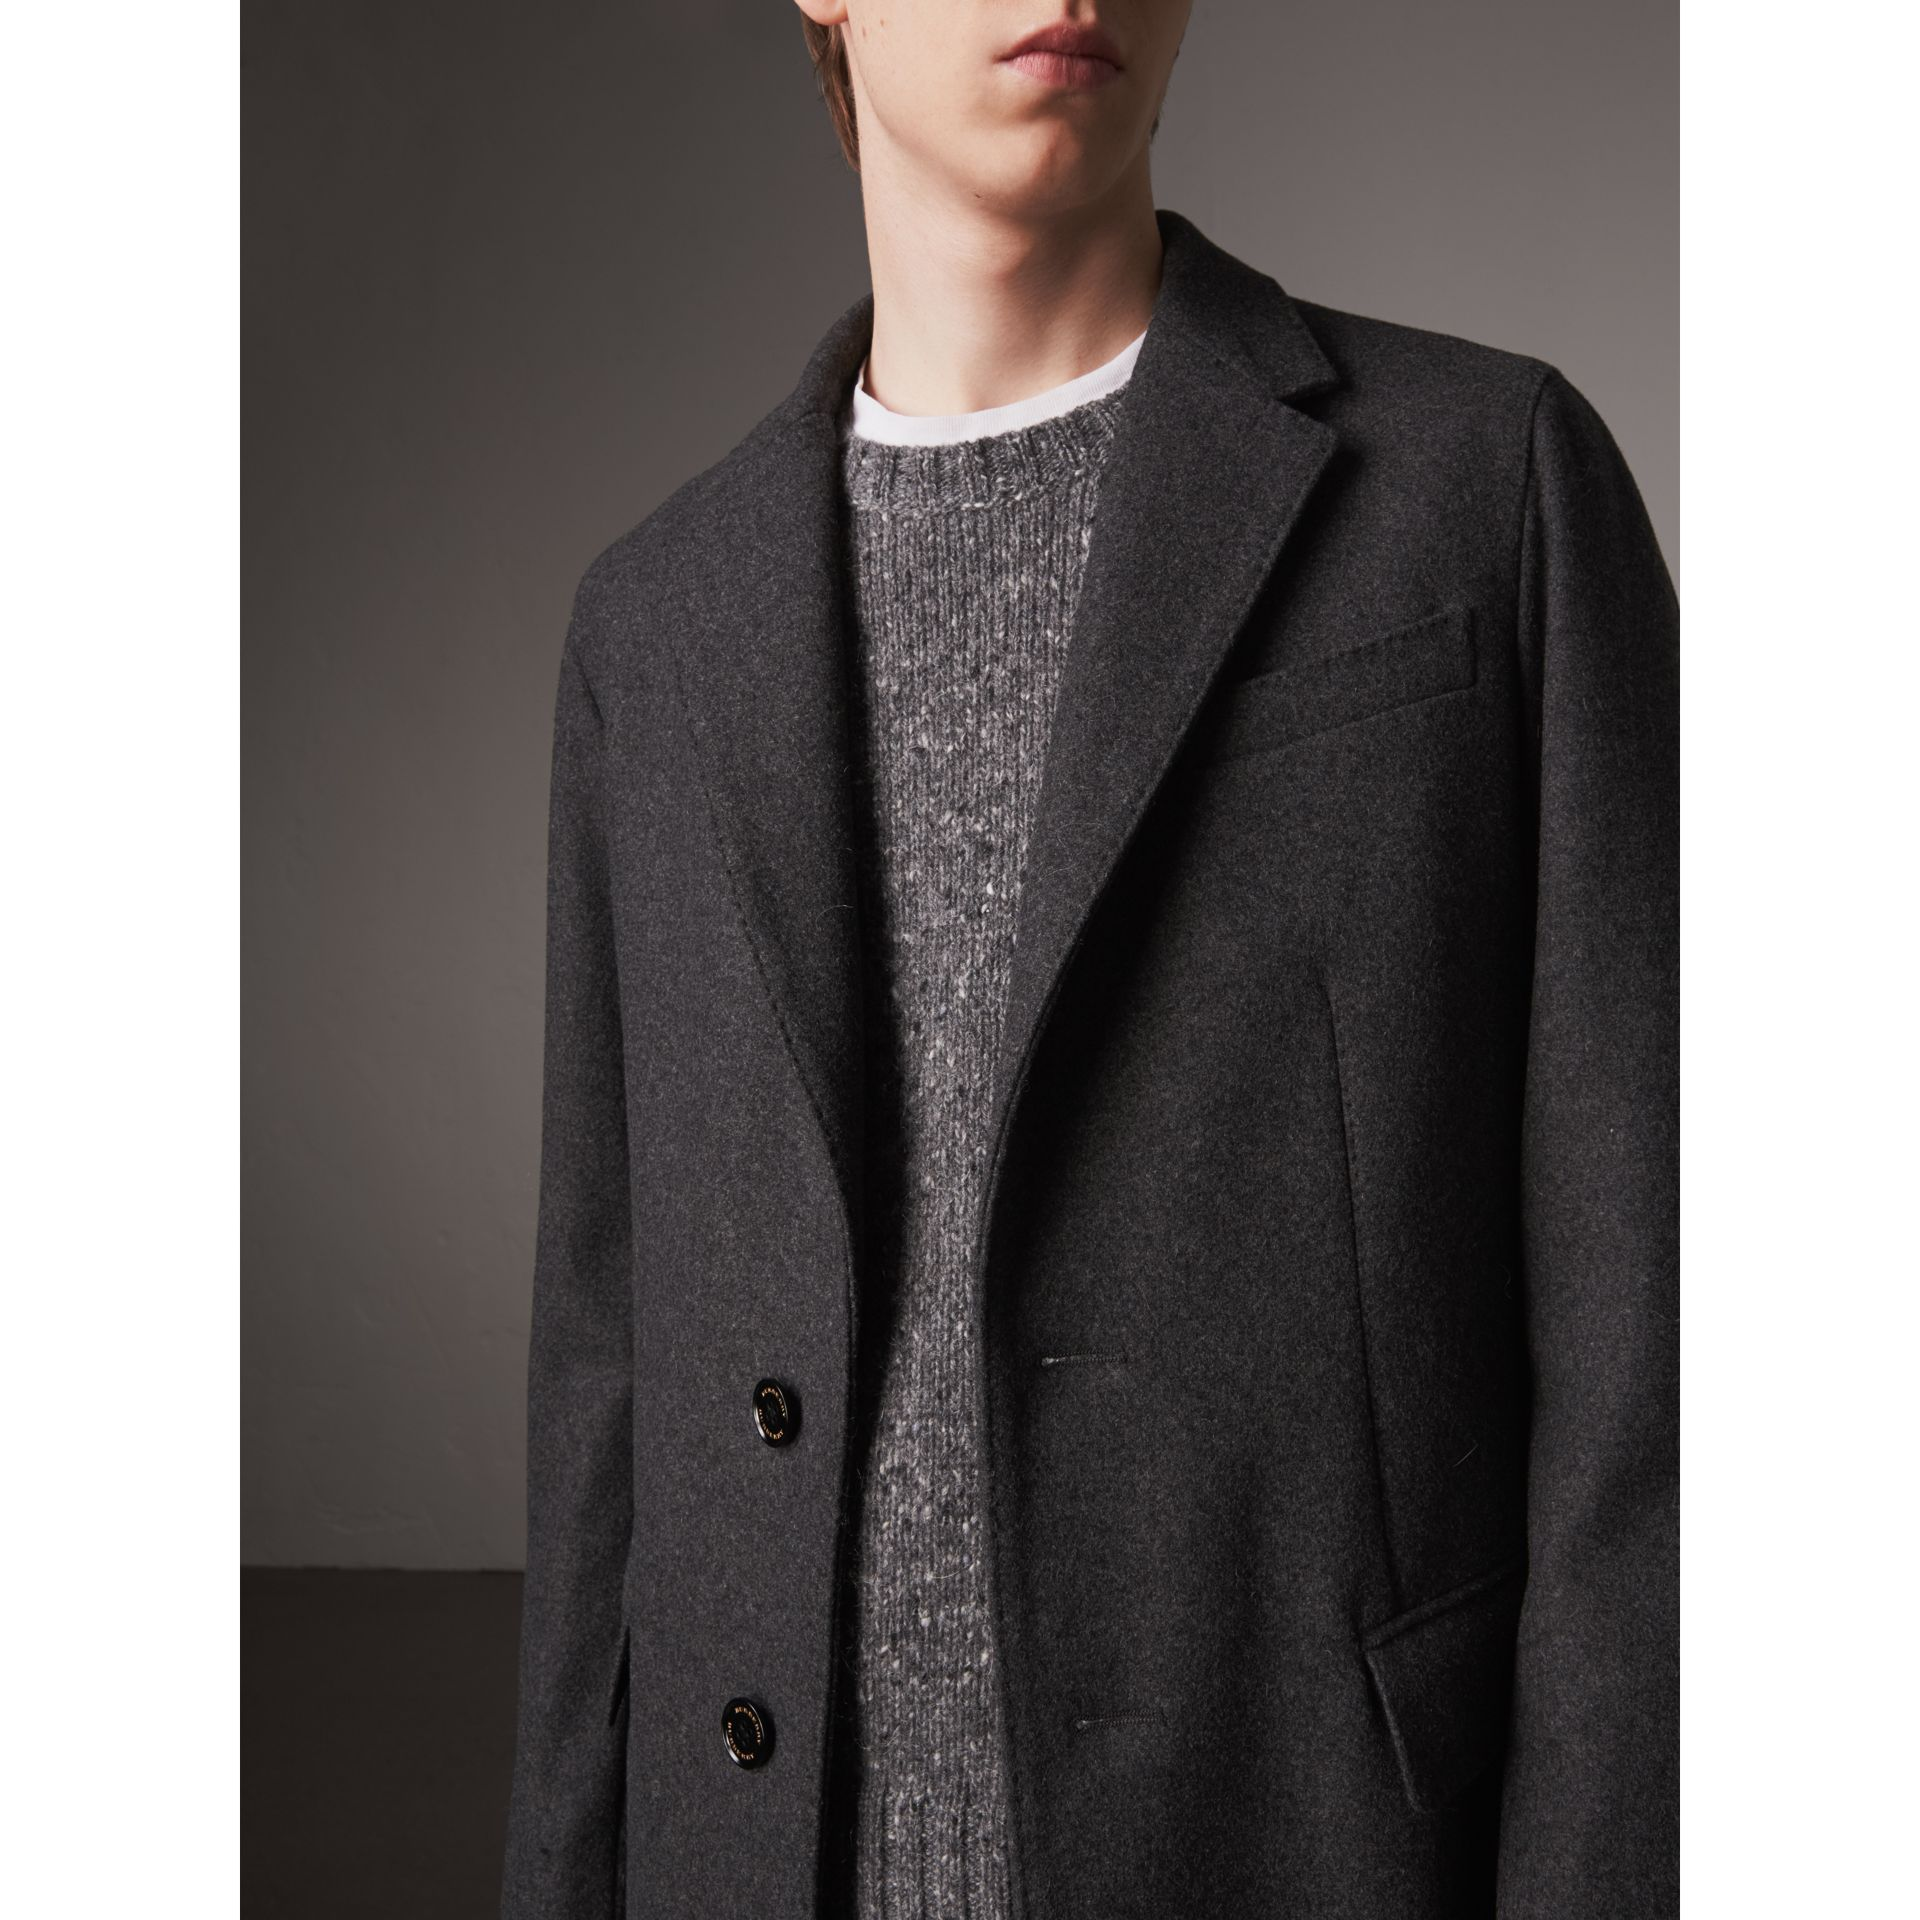 Melange Wool Blend Coat in Dark Grey - Men | Burberry United States - gallery image 1